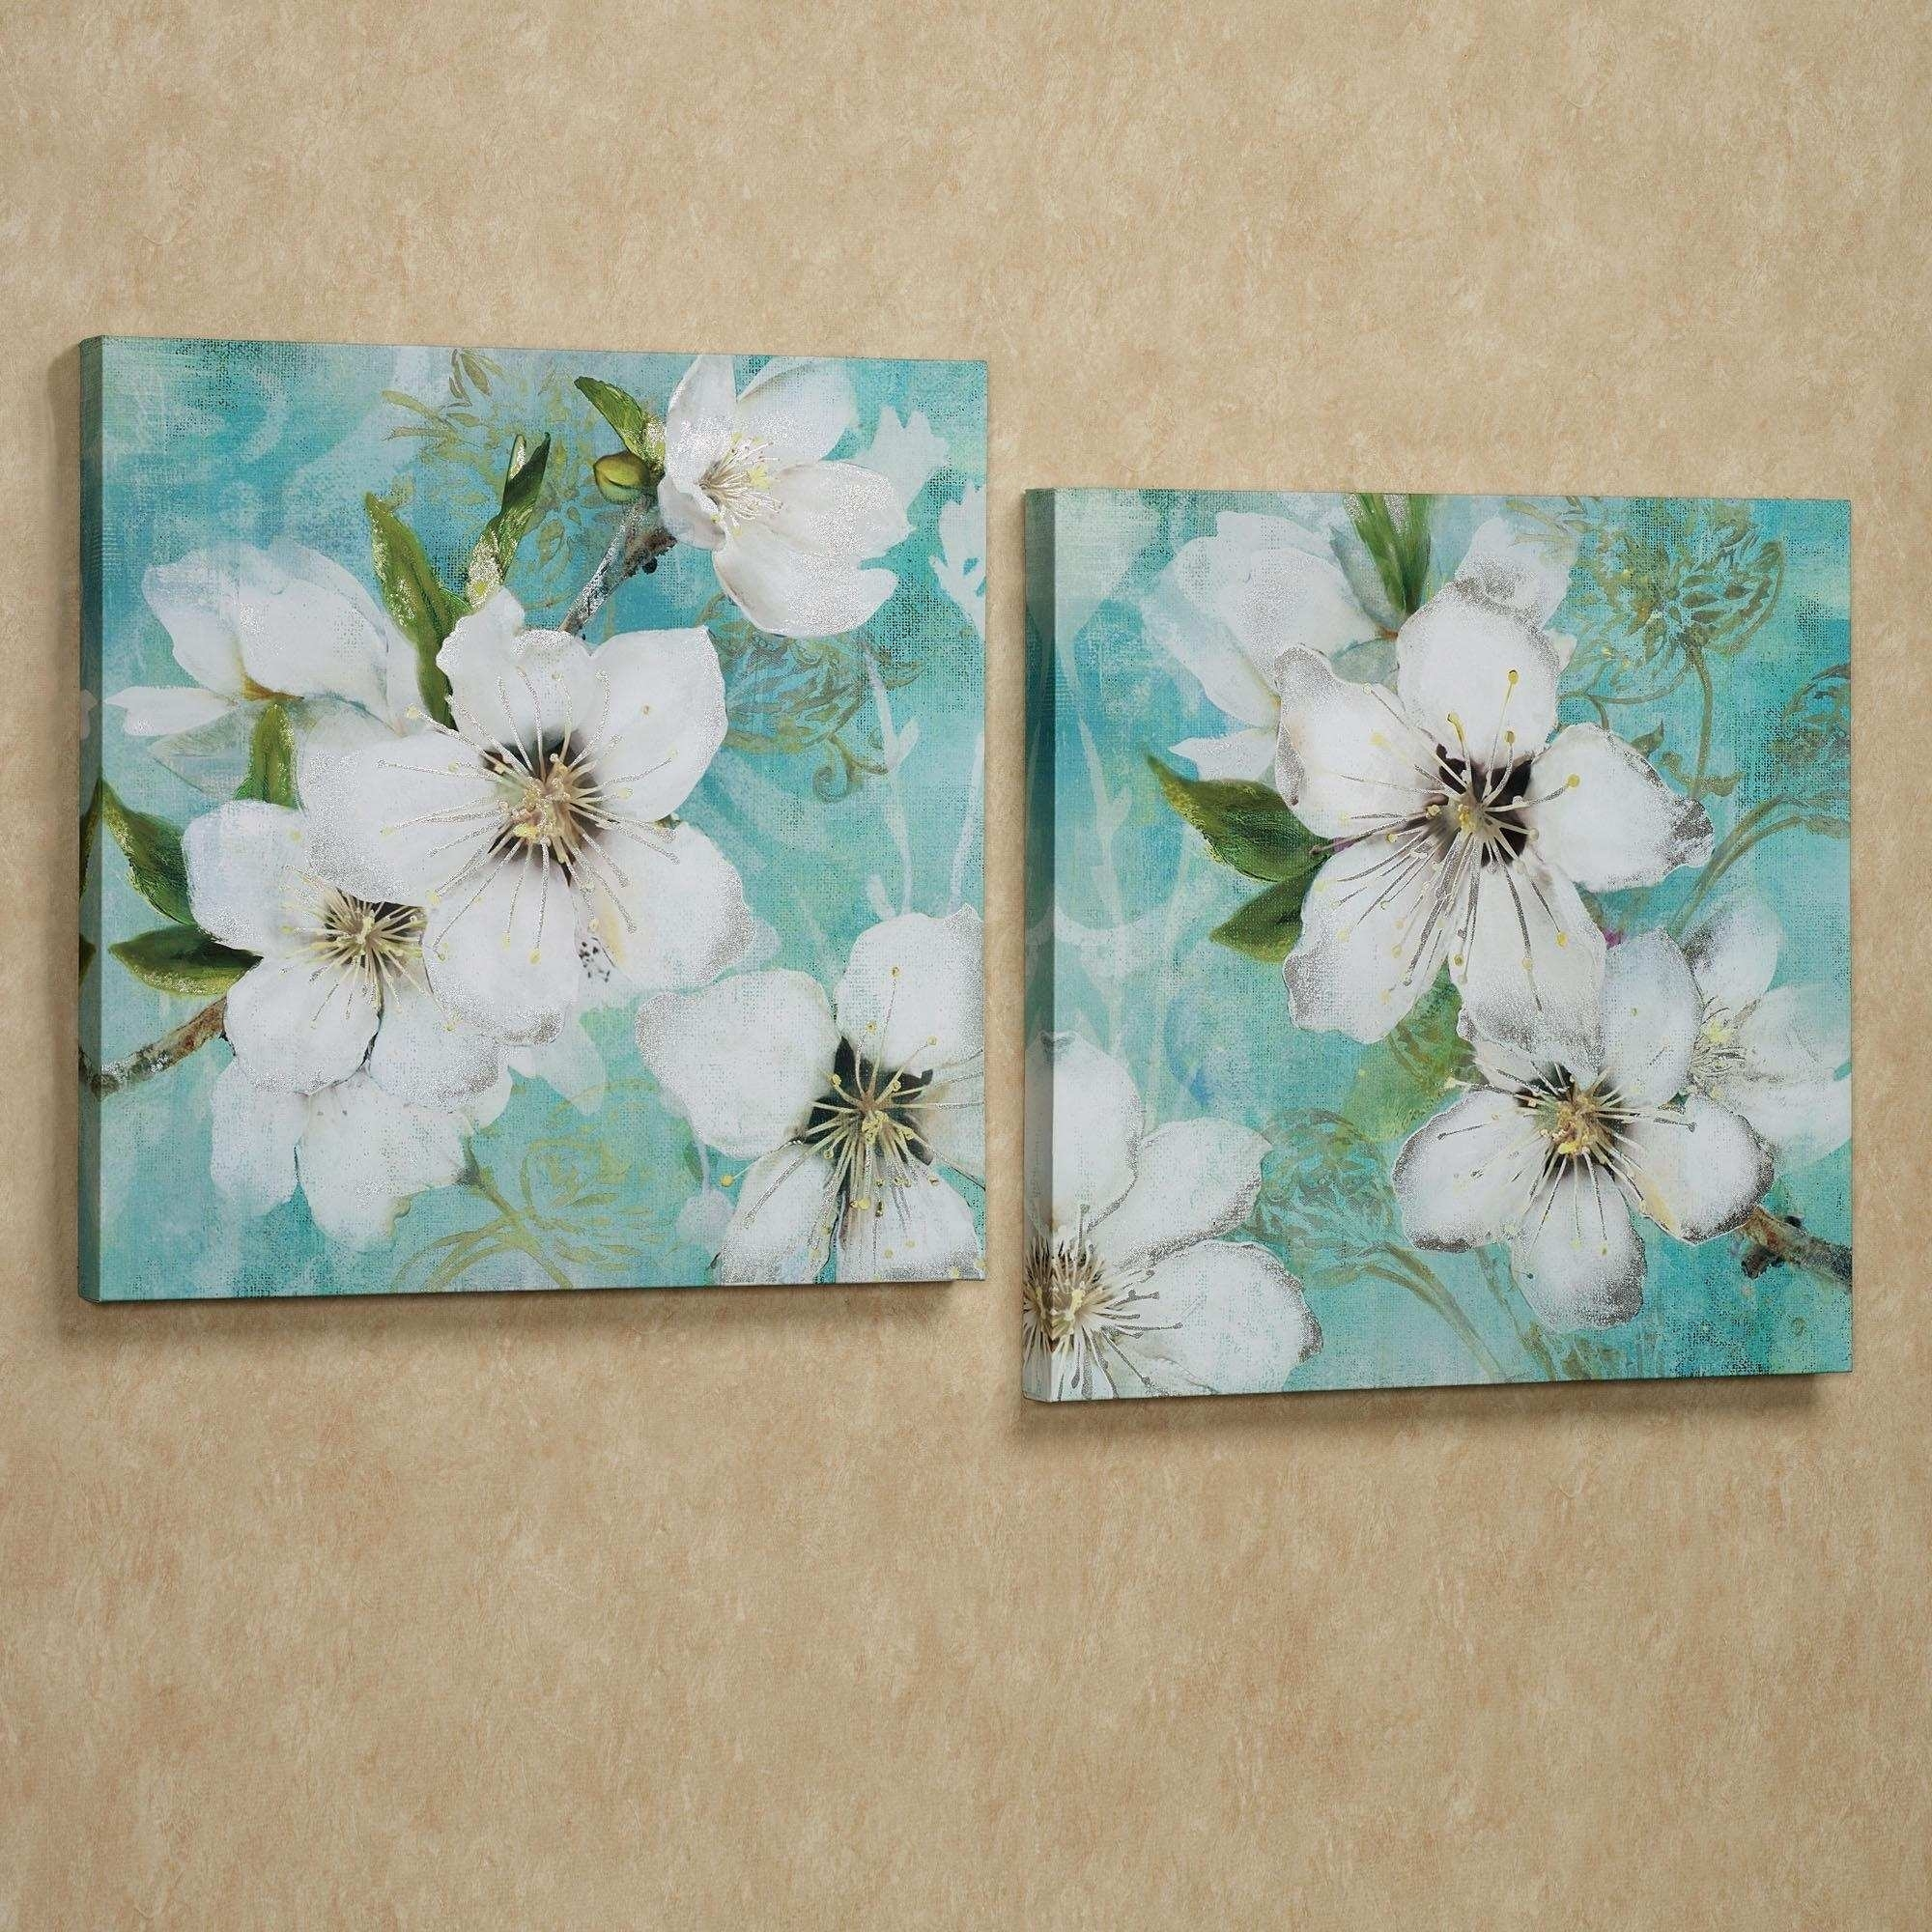 Floral Canvas Wall Art Fresh 20 Ideas Of Floral Wall Art Canvas Throughout Most Up To Date Floral Canvas Wall Art (View 19 of 20)